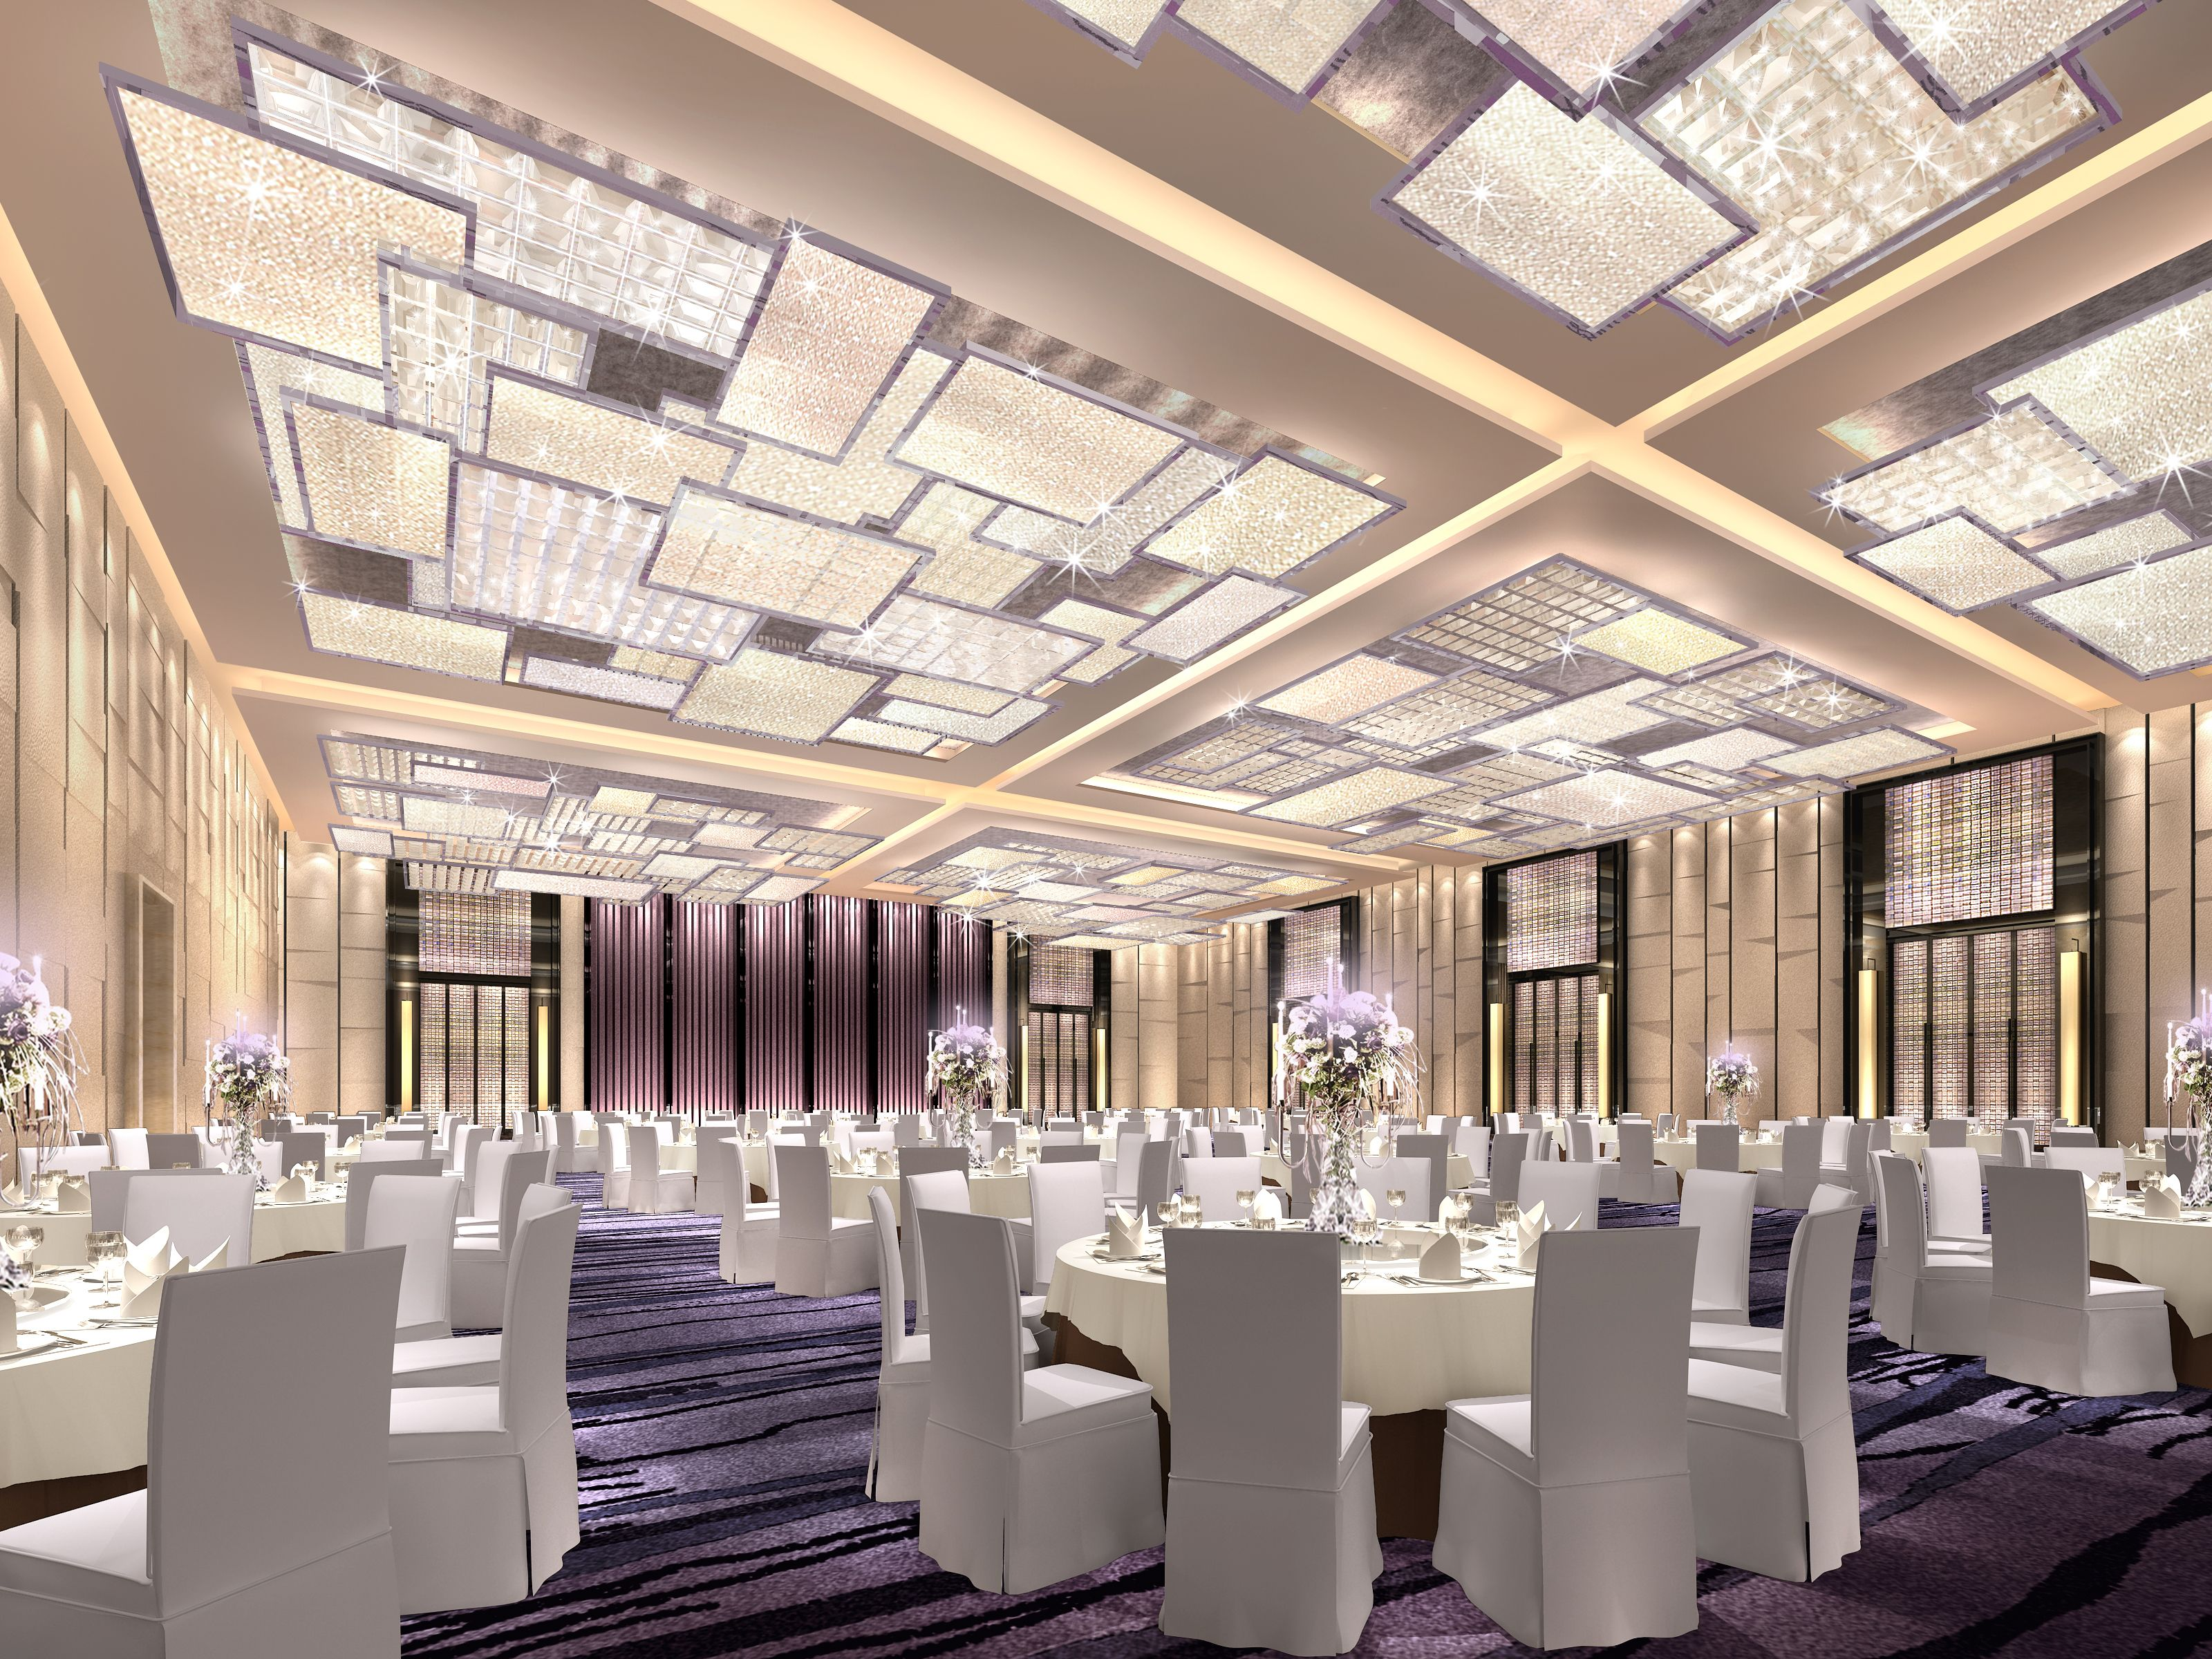 Grand Ballroom Ceiling Design